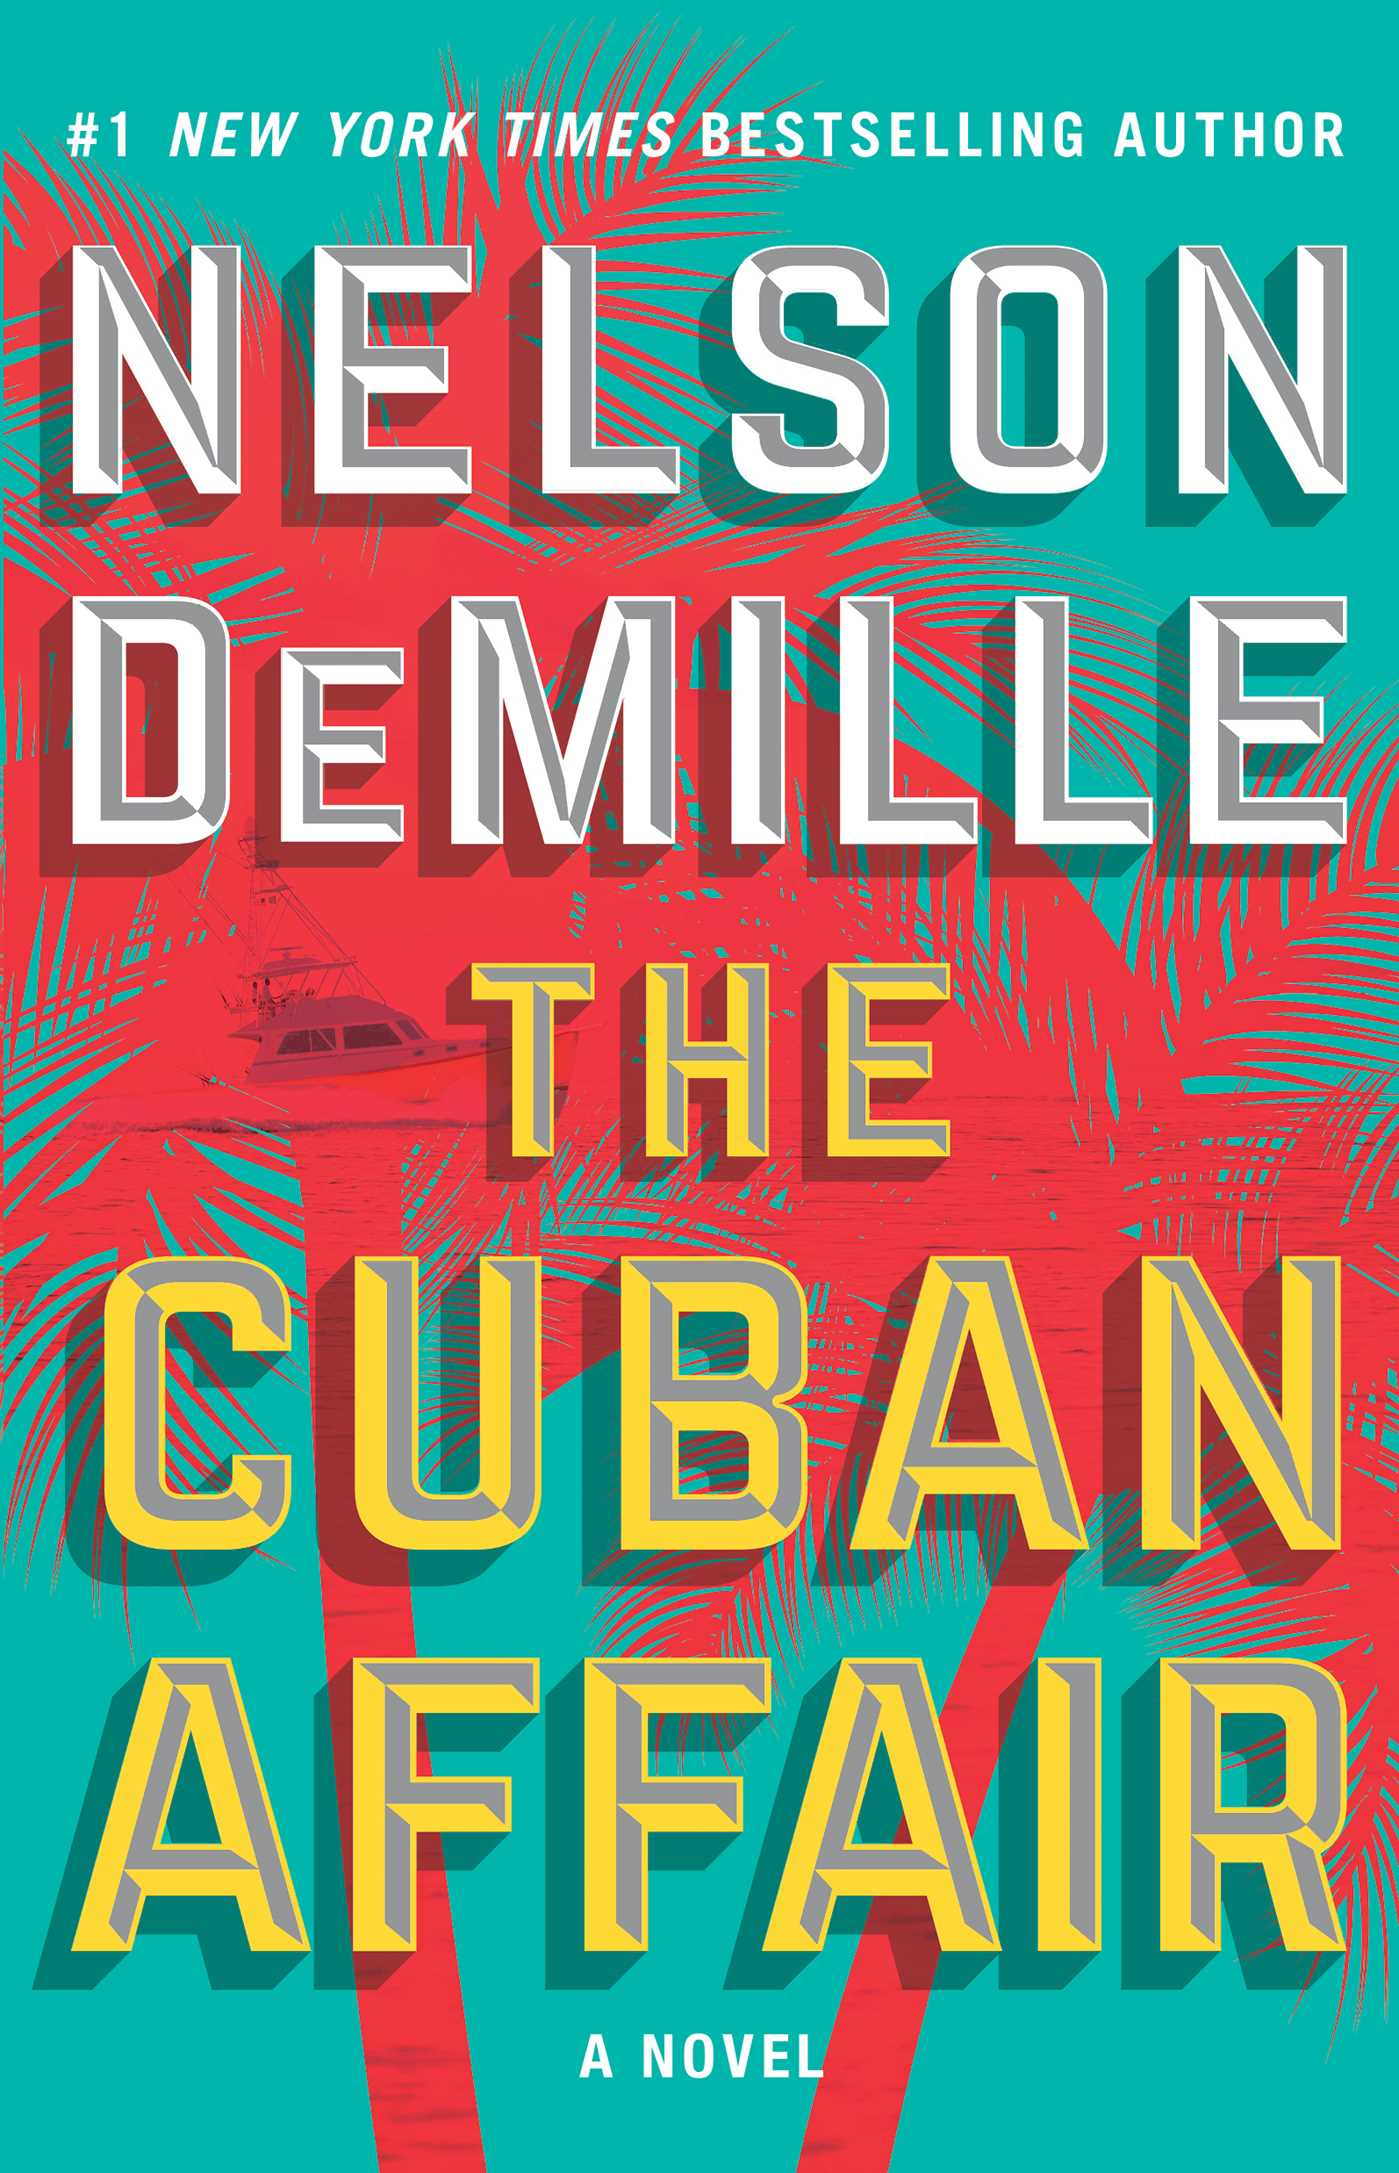 The cuban affair 9781501183959 hr